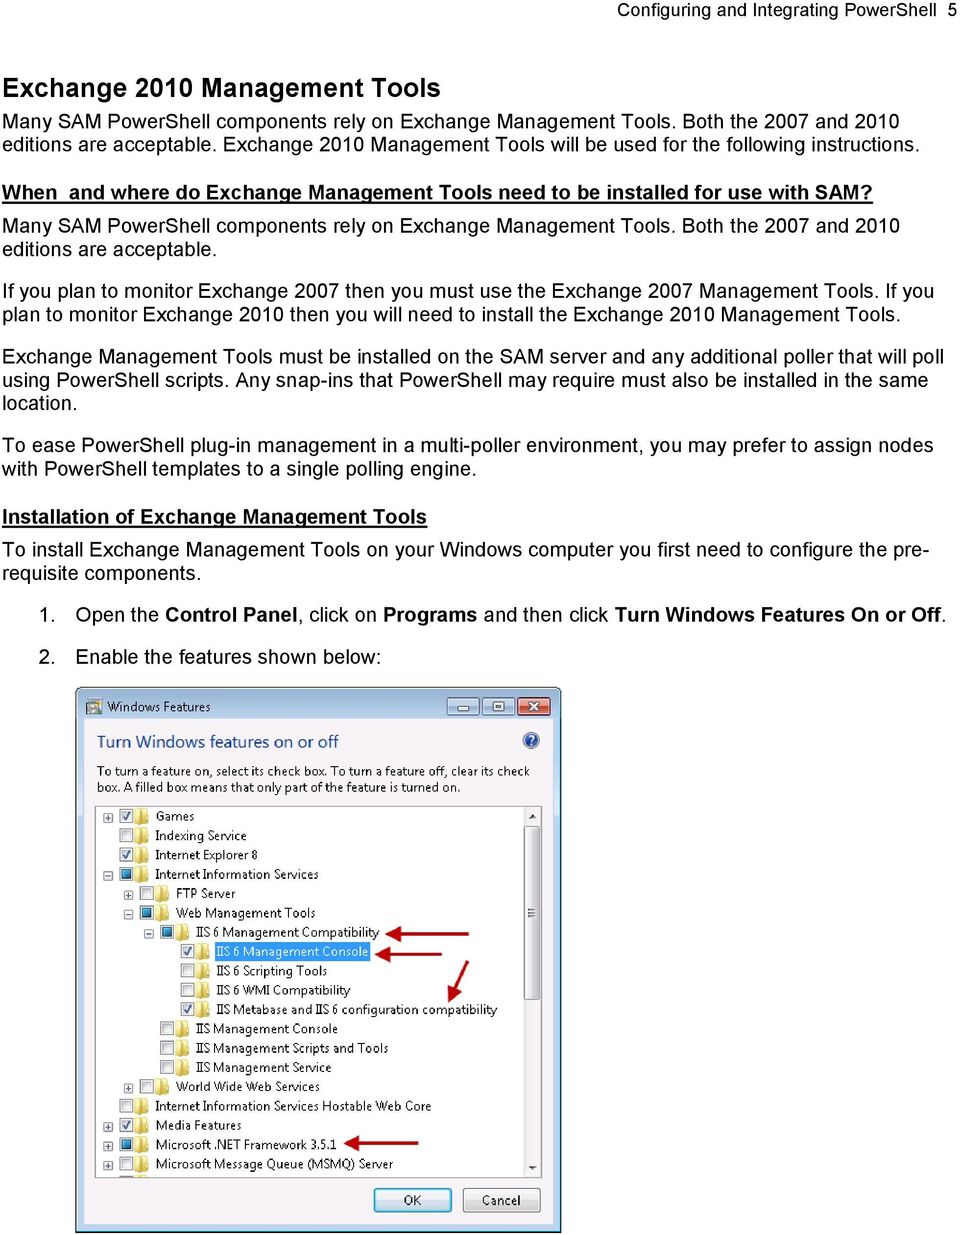 Many SAM PowerShell components rely on Exchange Management Tools. Both the 2007 and 2010 editions are acceptable.